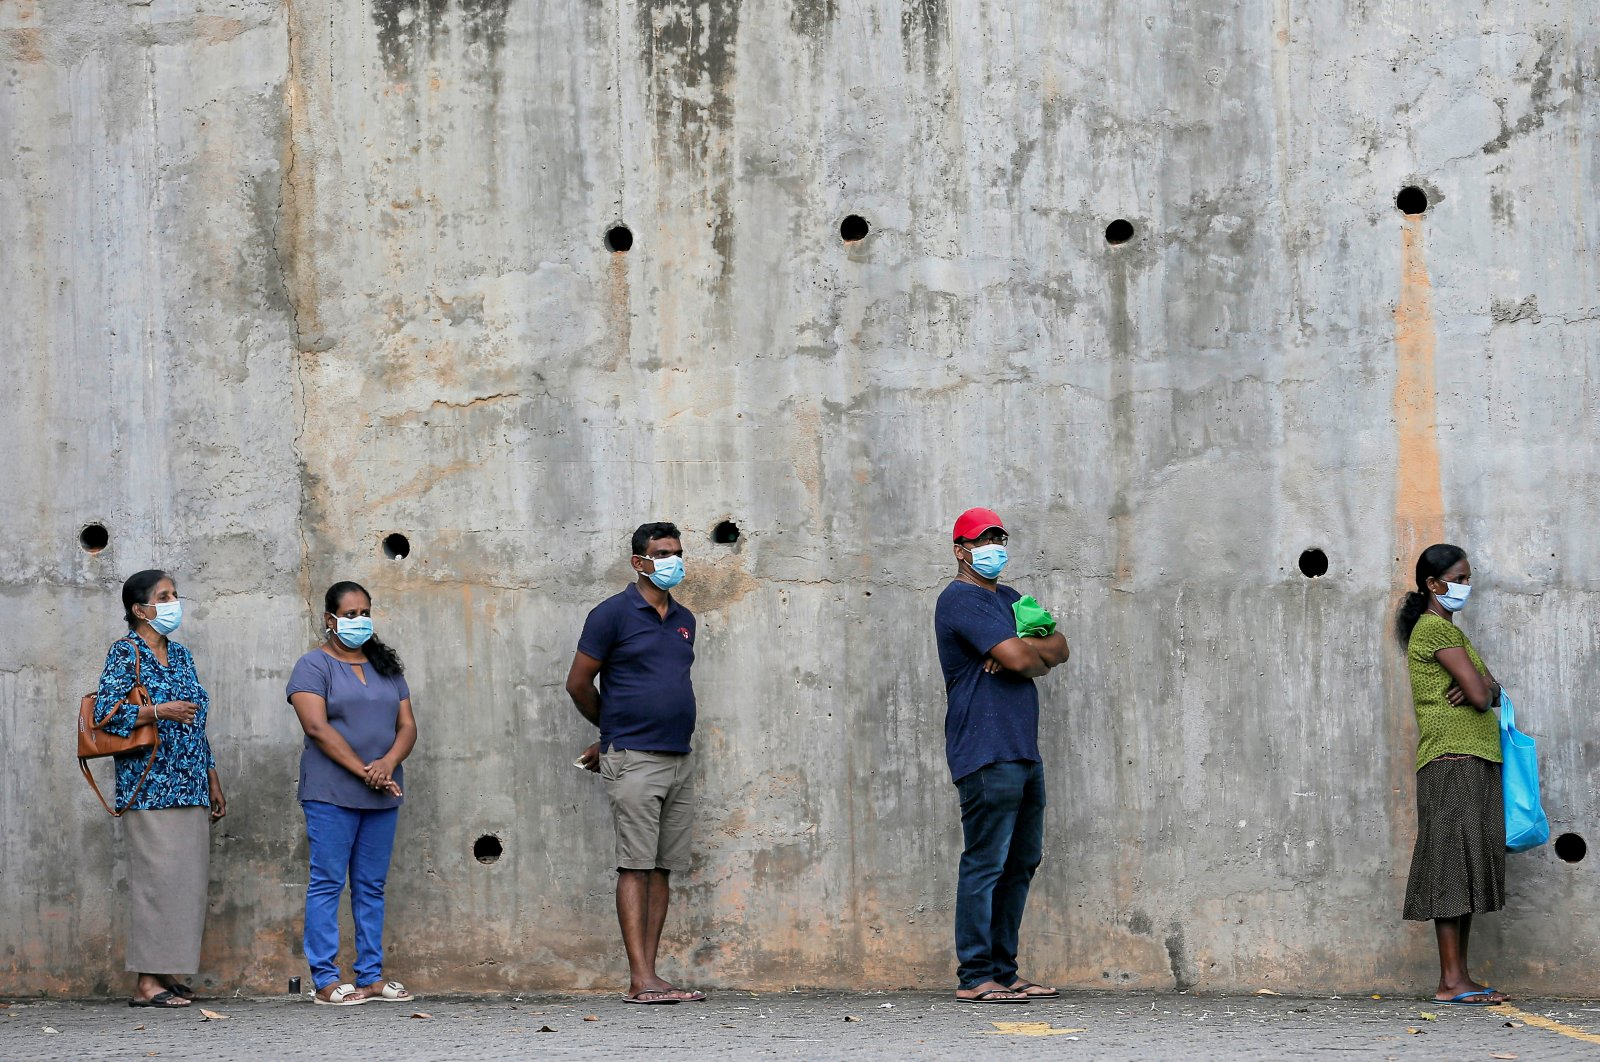 People maintain the 1-meter recommended distance between each other in Colombo, March 24, 2020. (REUTERS Photo)